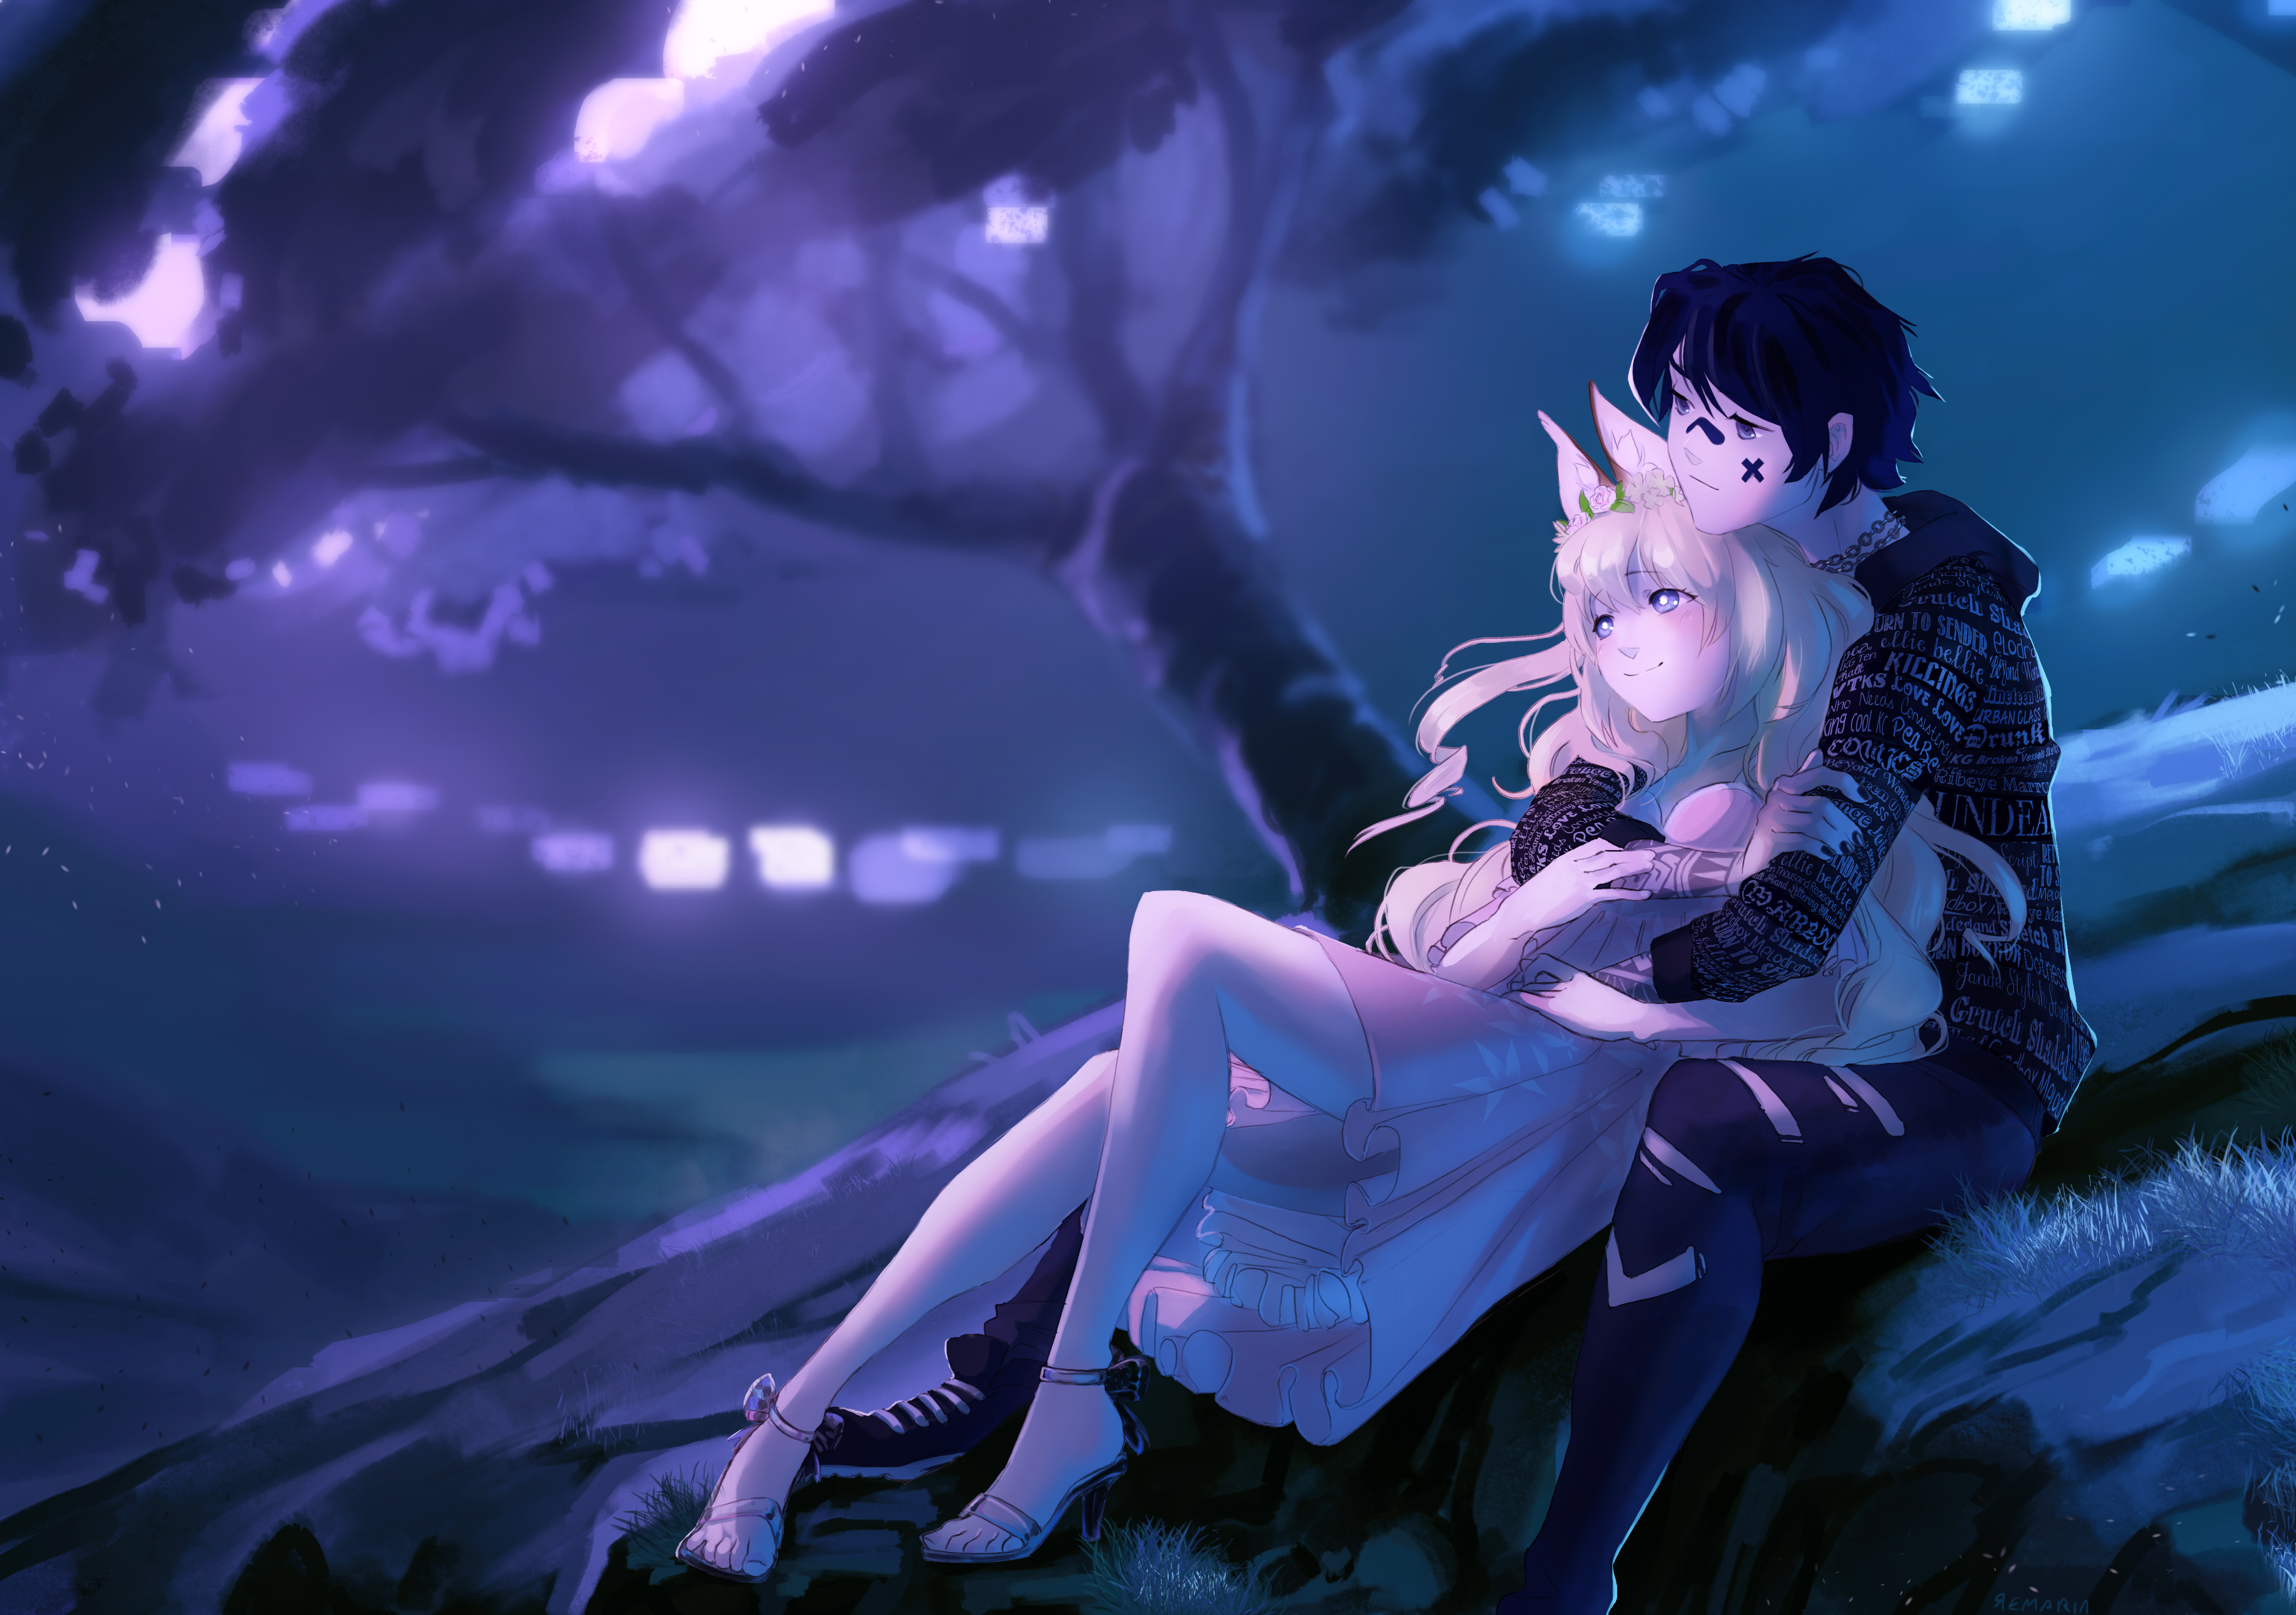 embraced and endeared anime couple 1578253832 - Embraced And Endeared Anime Couple -